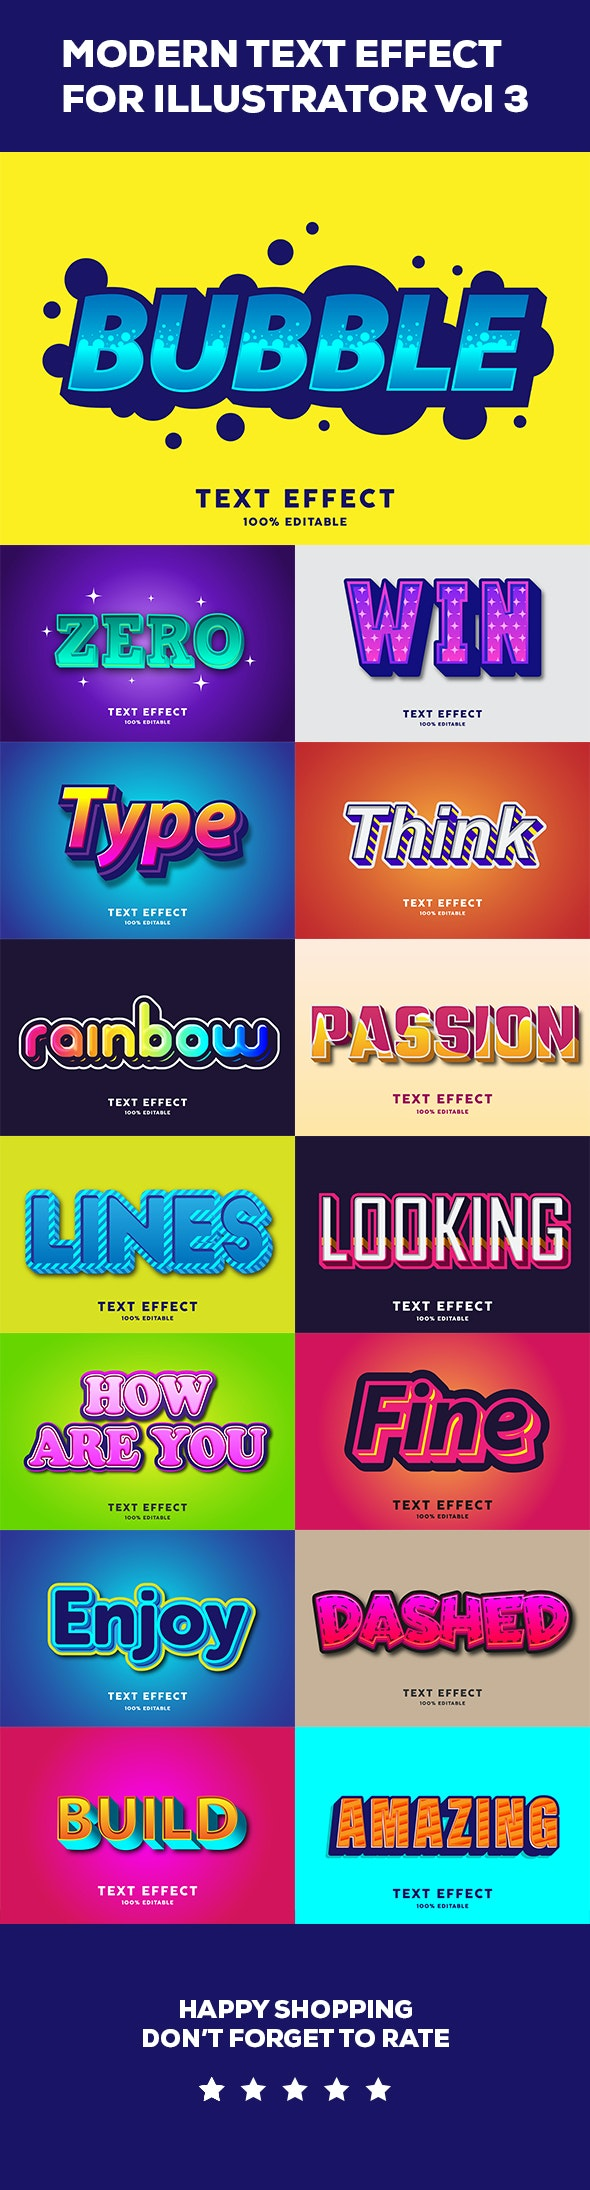 Modern Text effect vol 3 - Styles Illustrator